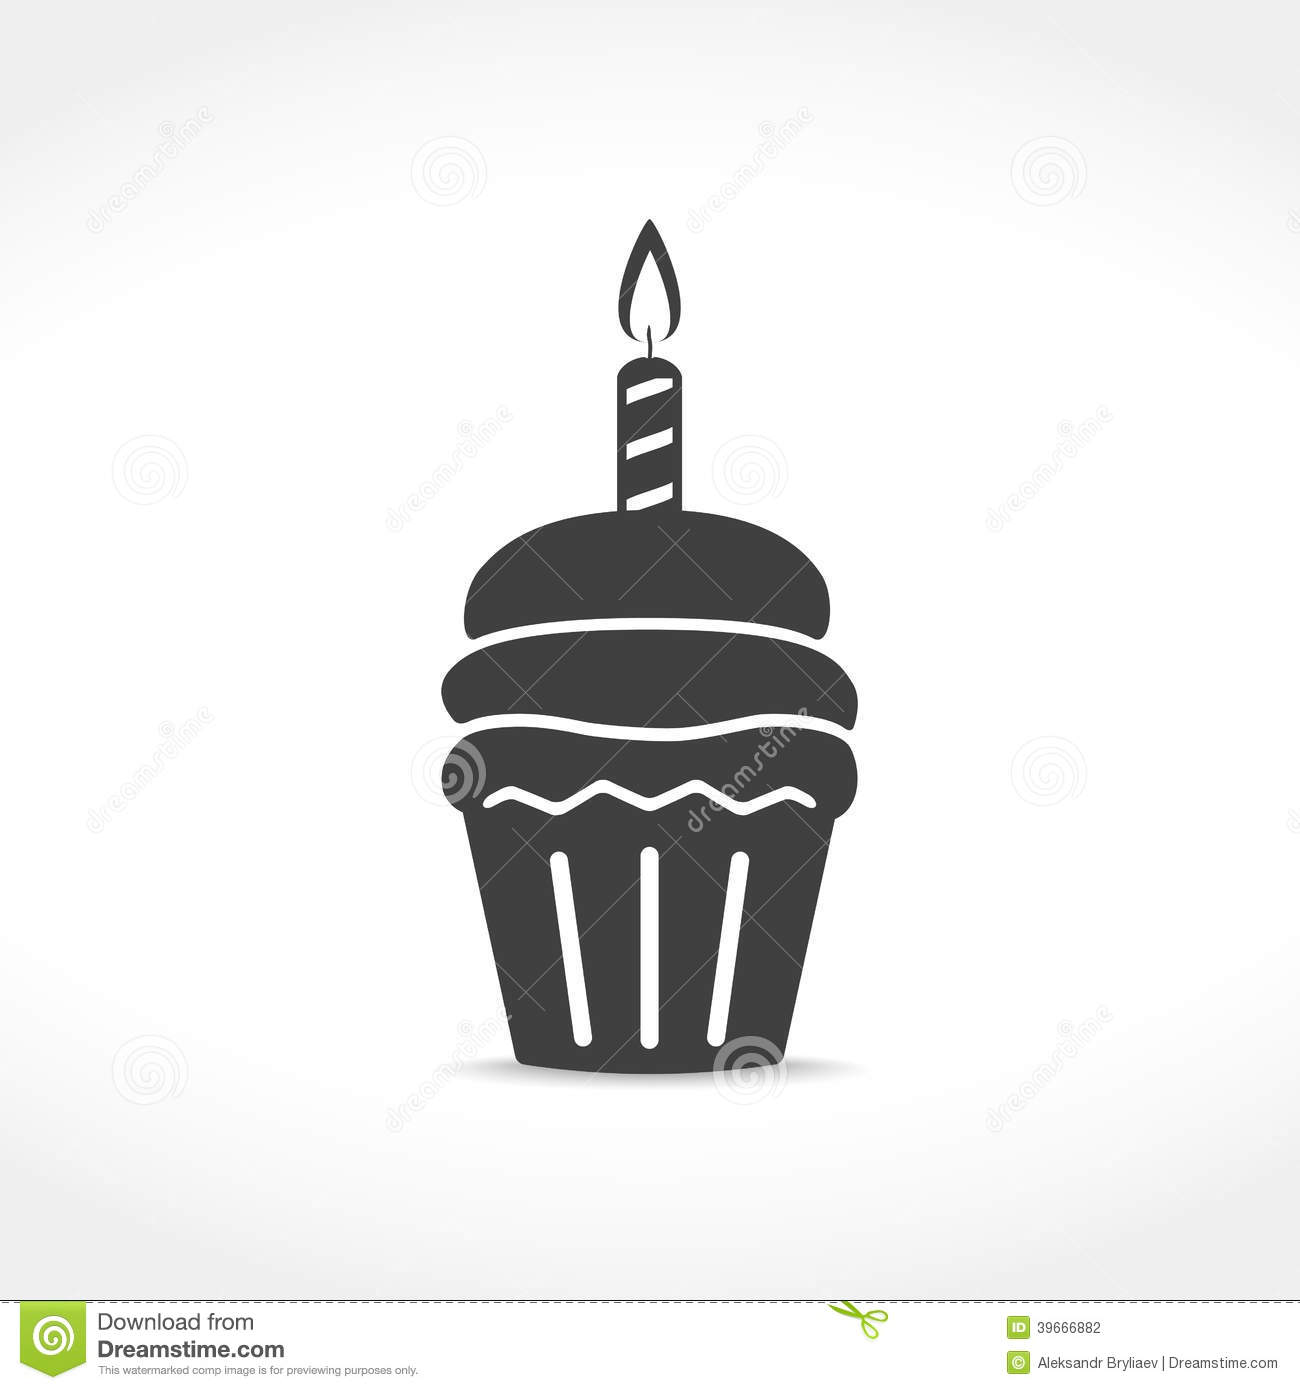 ... Illustration birthday cupcake icon stock vector - image: 39666882: pixshark.com/birthday-cupcake-illustration.htm